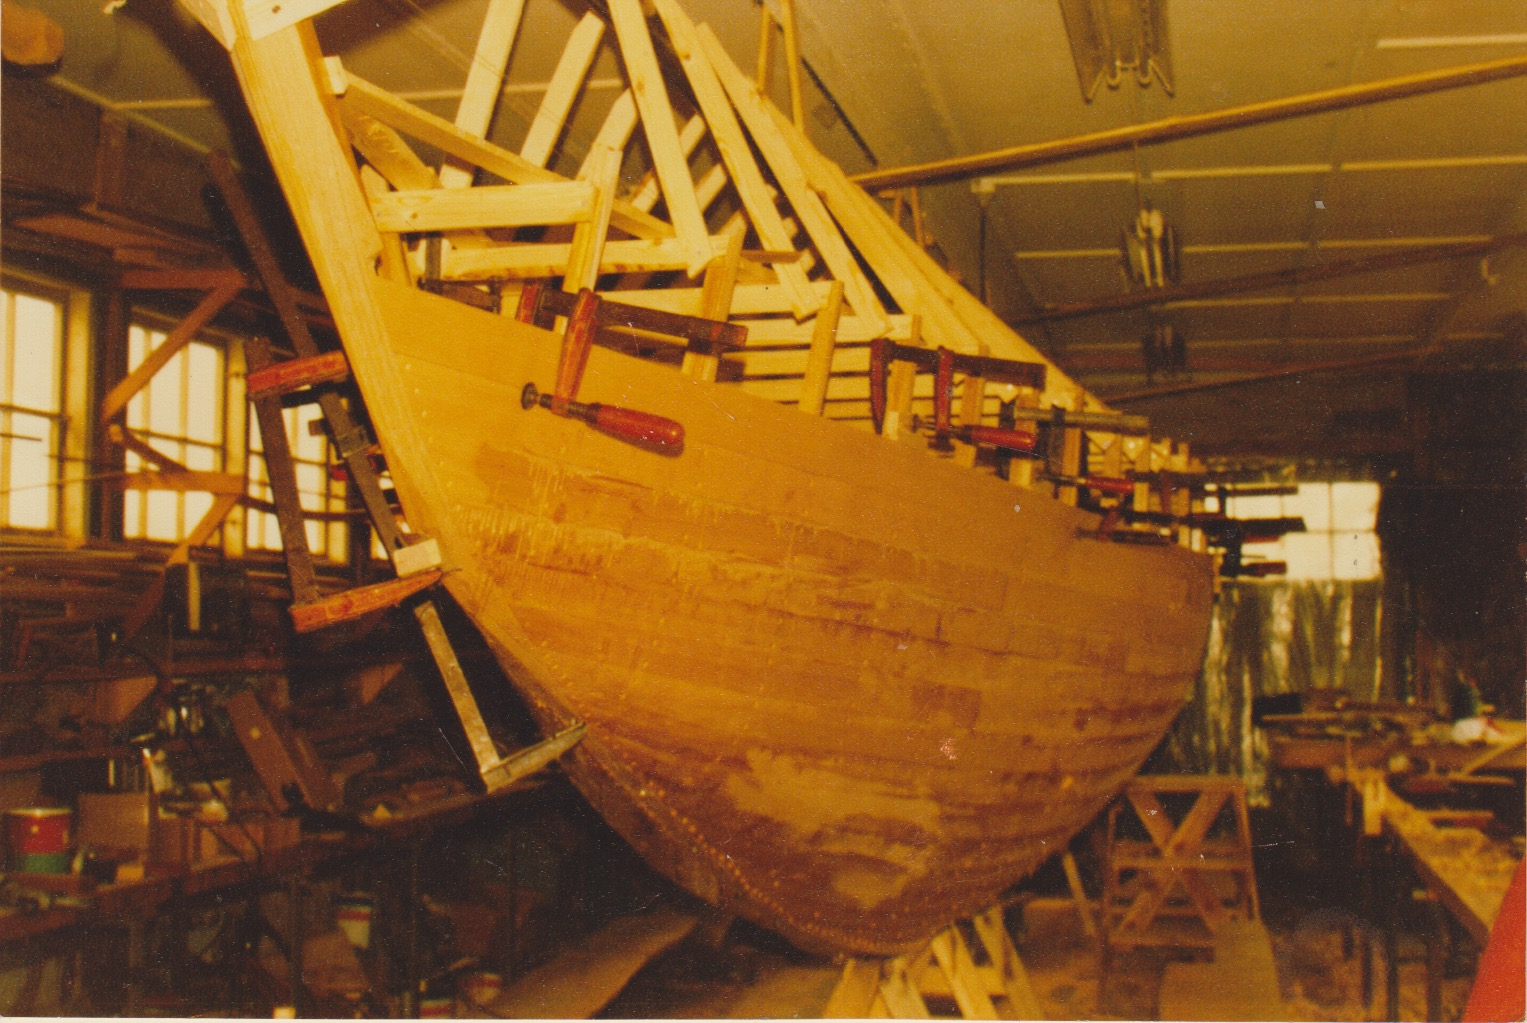 Wooden boat being built